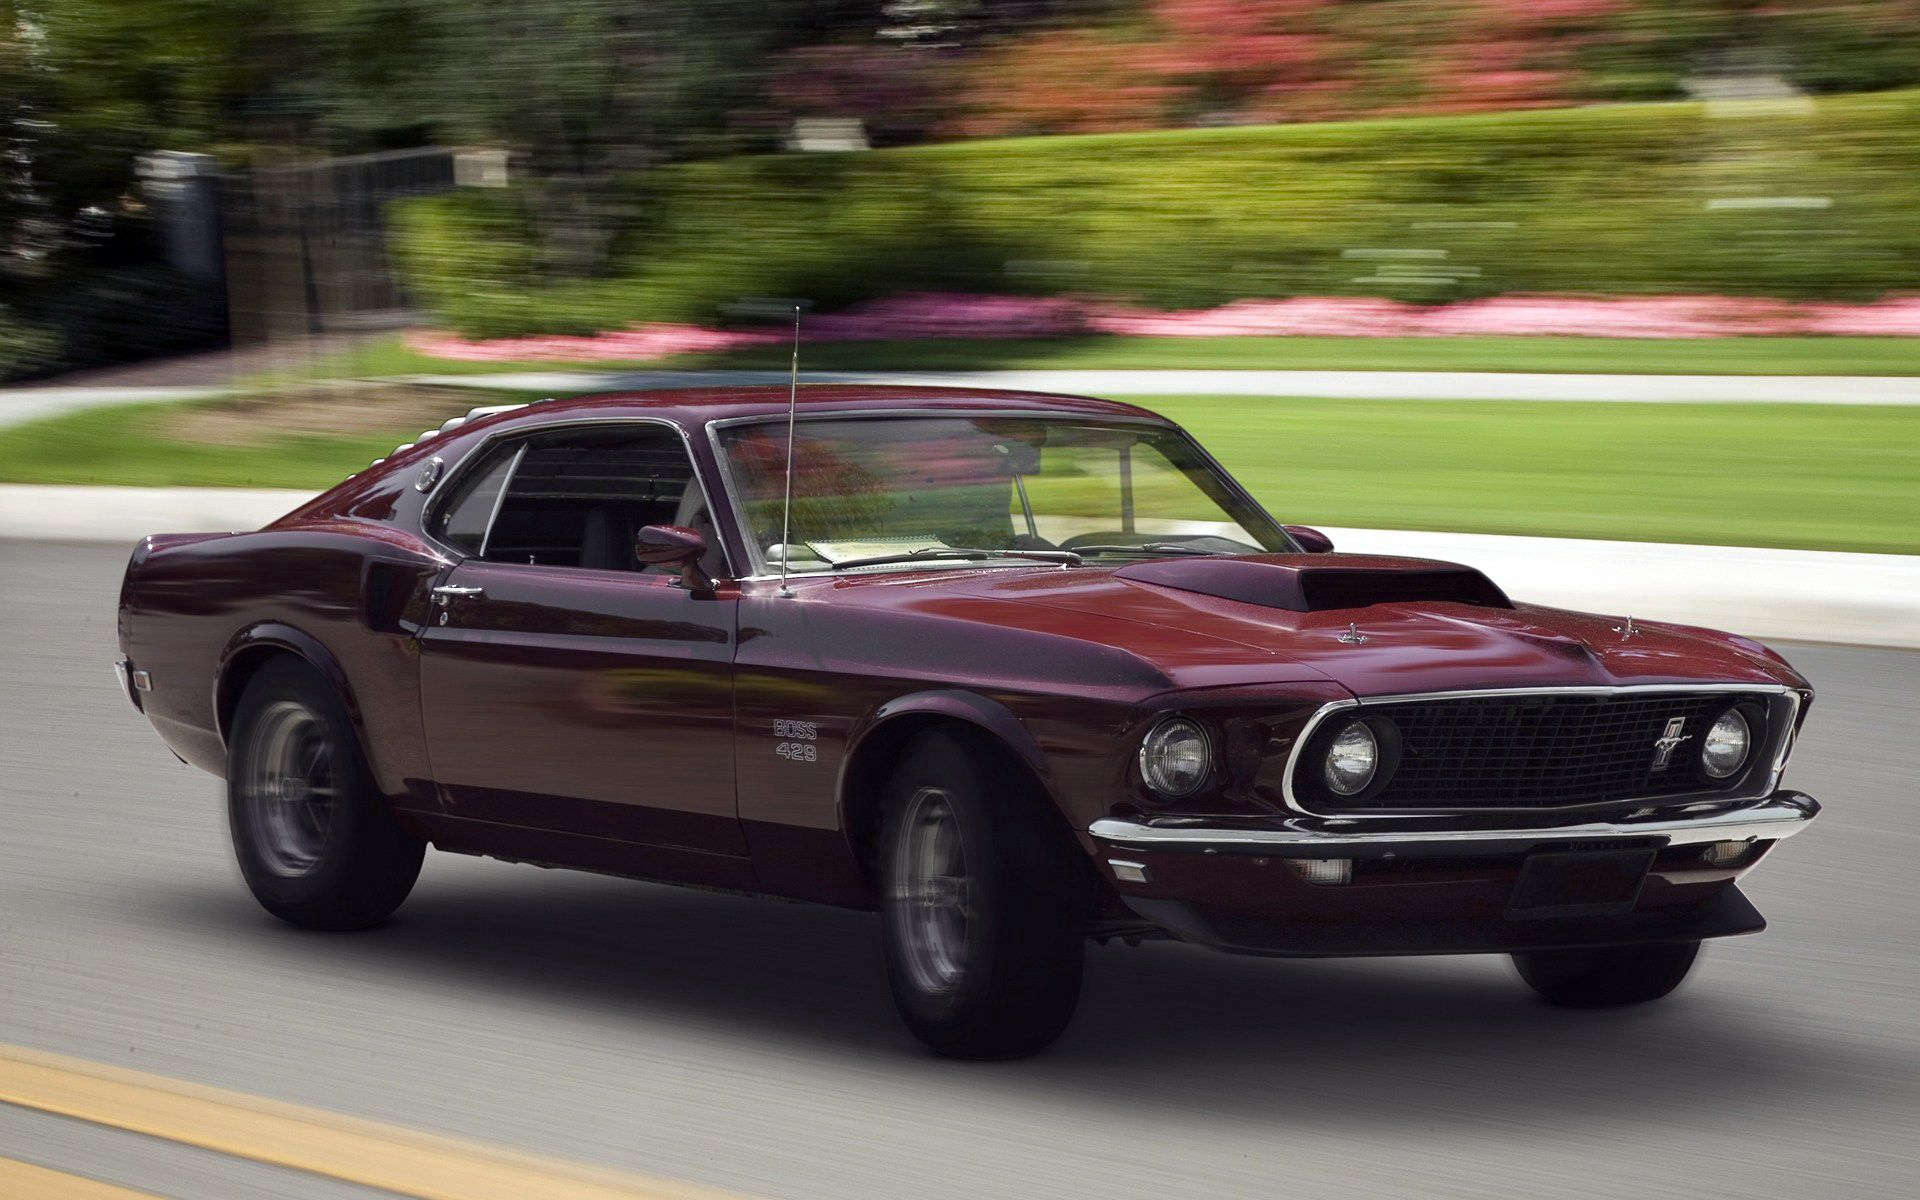 150792 download wallpaper Mustang, Cars, 1969, Muscle Car, 429, Fastback, Ford Boss screensavers and pictures for free